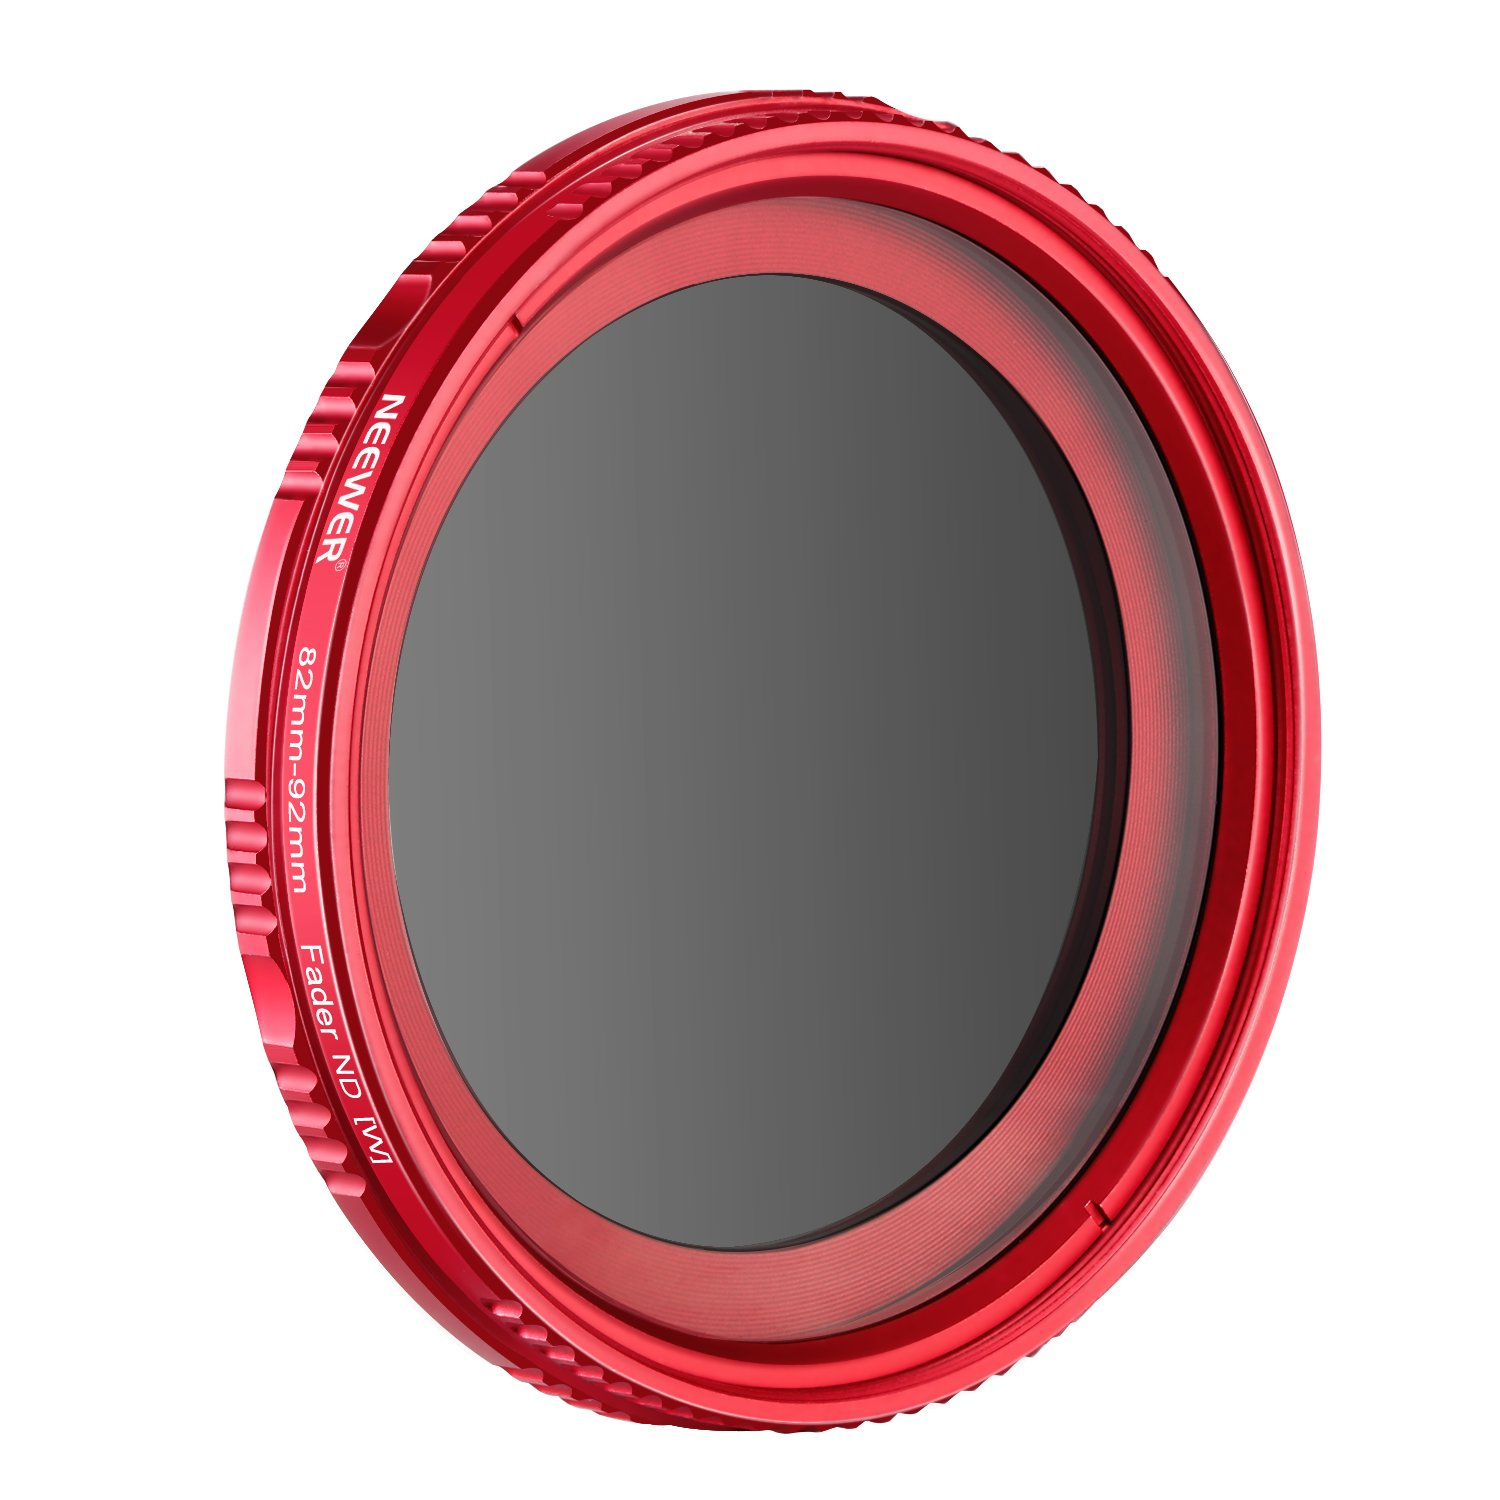 Neewer 58MM Ultra Slim ND2-ND400 Fader Neutral Density Variable Adjustable Lens Filter for Camera Lens with 58MM Filter Thread Size, Made of Optical Glass and Aluminum Alloy Frame(Red) 10093142